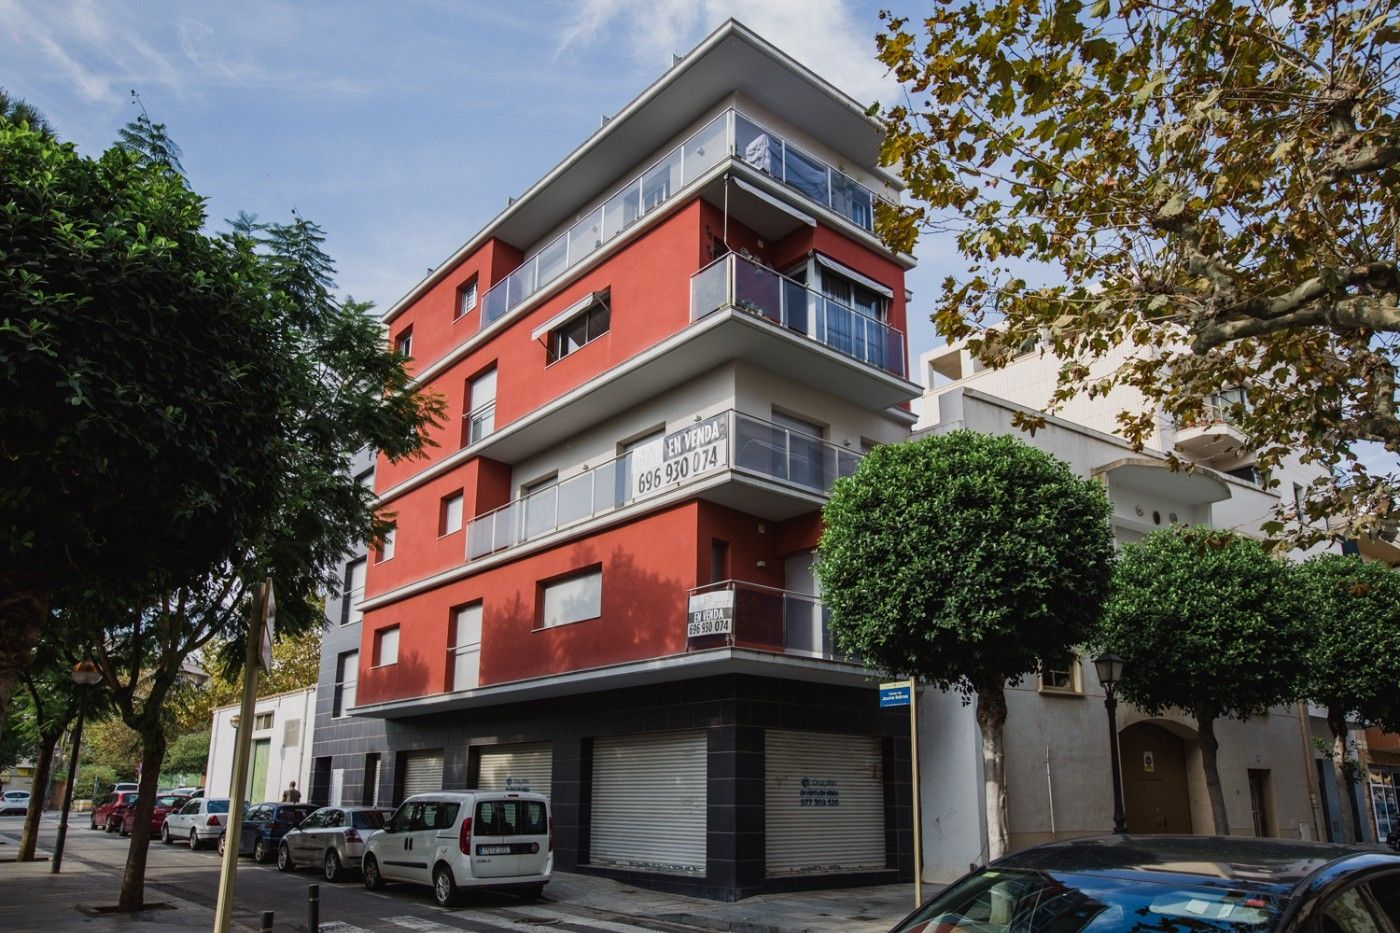 Local Comercial en Carrer jaume balmes, 4